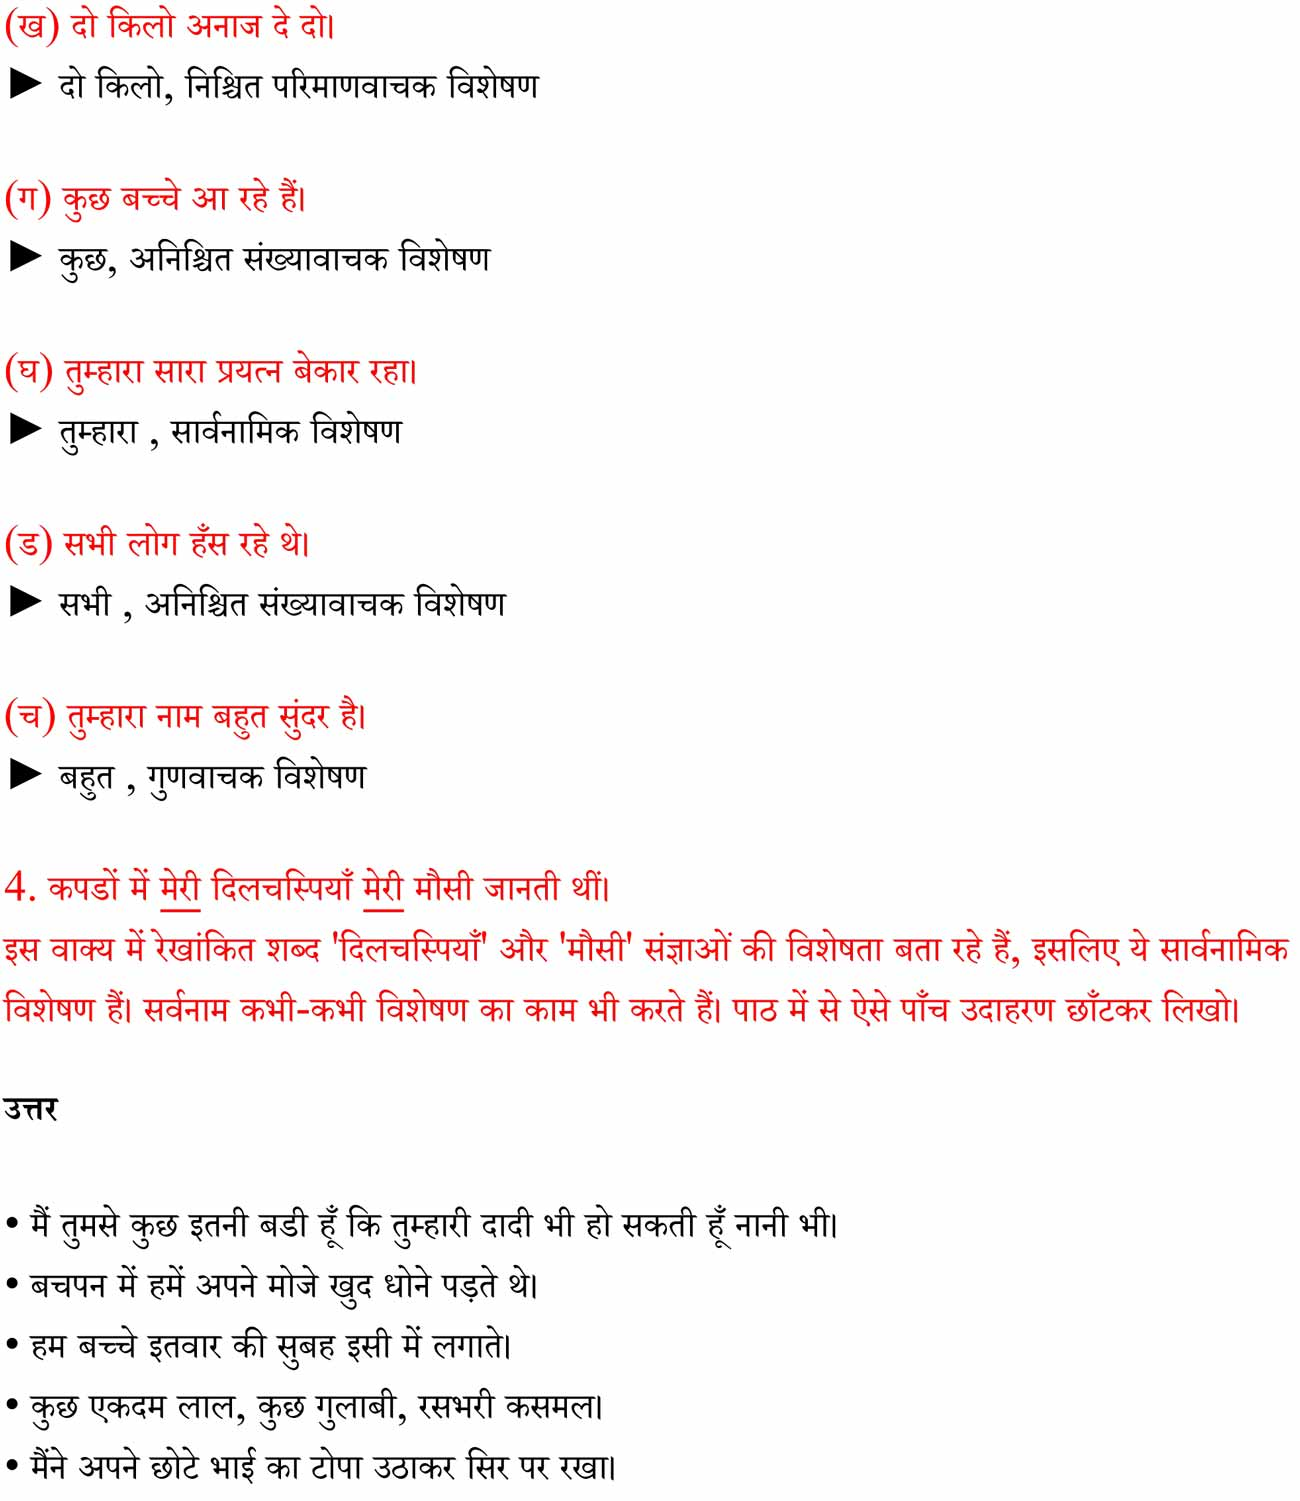 NCERT Solutions For Class 6 Hindi Vasant - Chapter 2